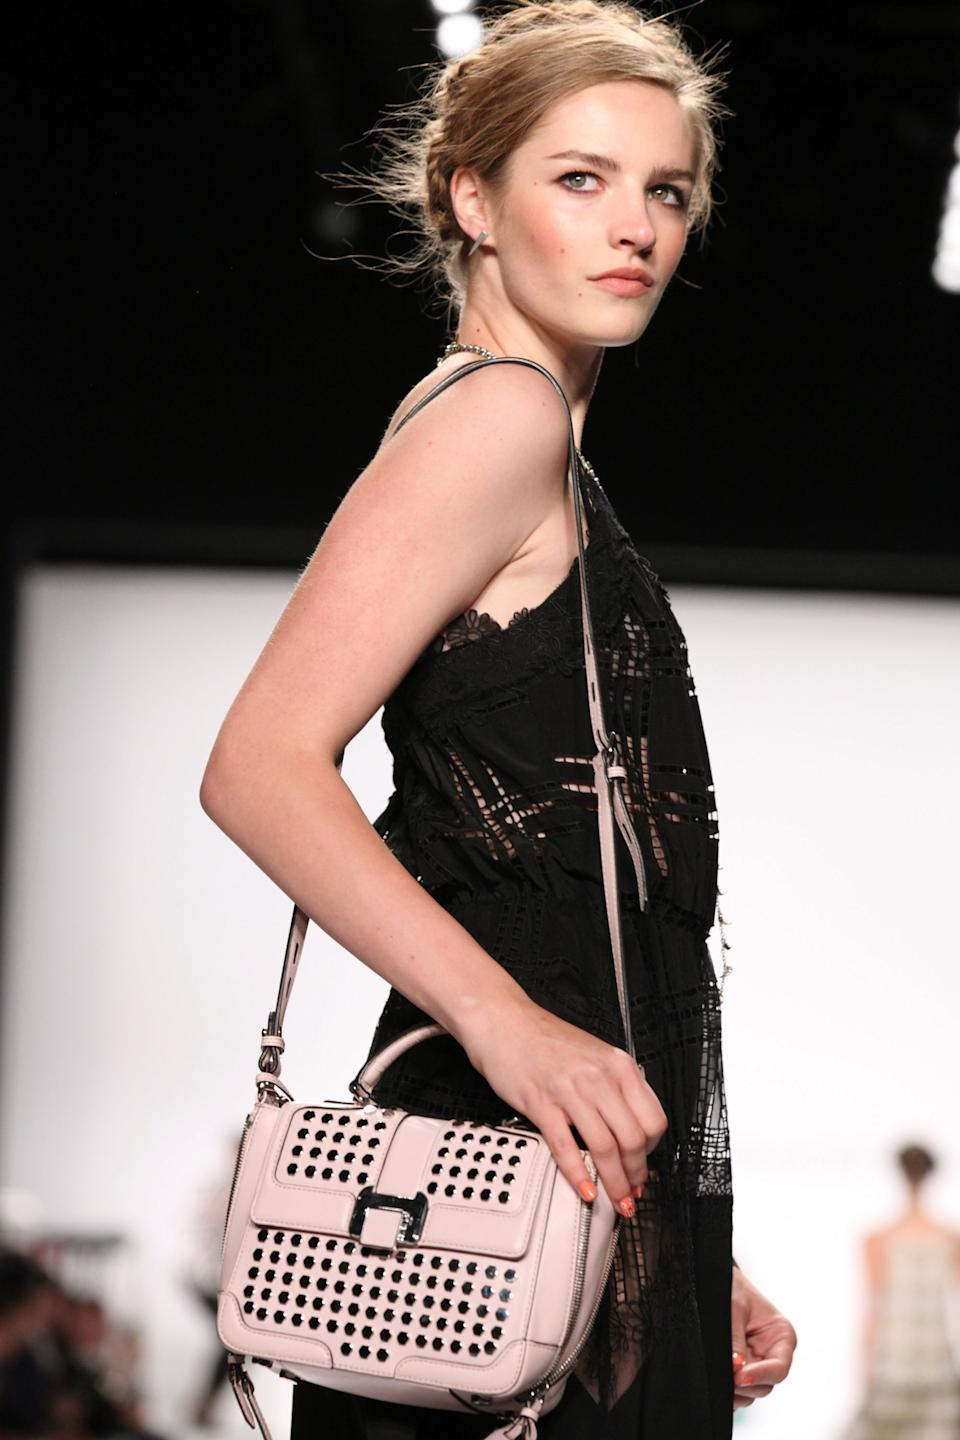 The Rebecca Minkoff Spring Summer 2014 collection is modeled at New York Fashion Week on Friday, Sept. 6, 2013. (AP Photo/Lisa Tolin)